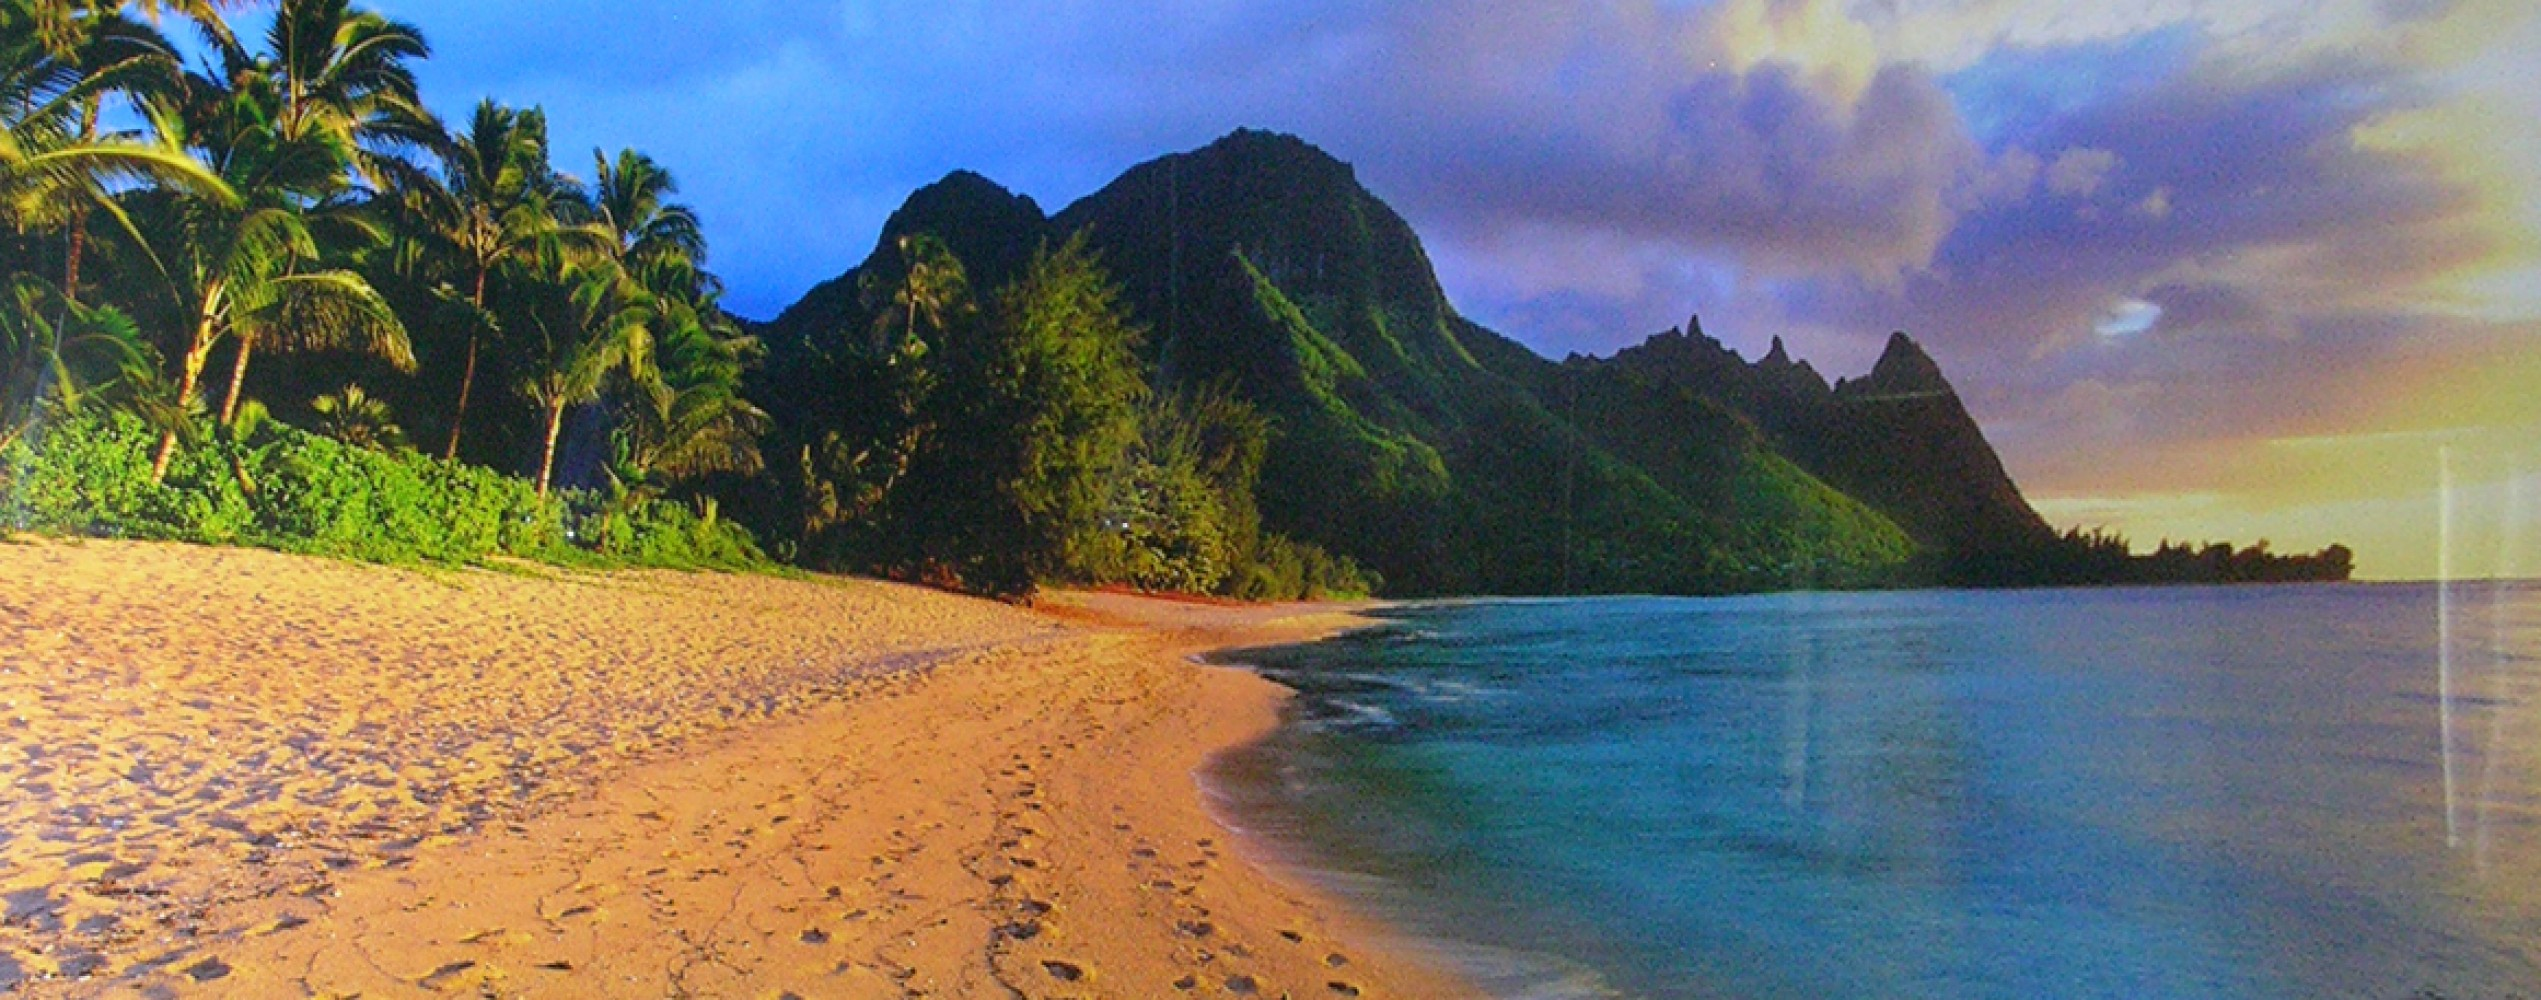 Seventh Heaven  (Na Pali Coast, Kauai, Hawaii) AP